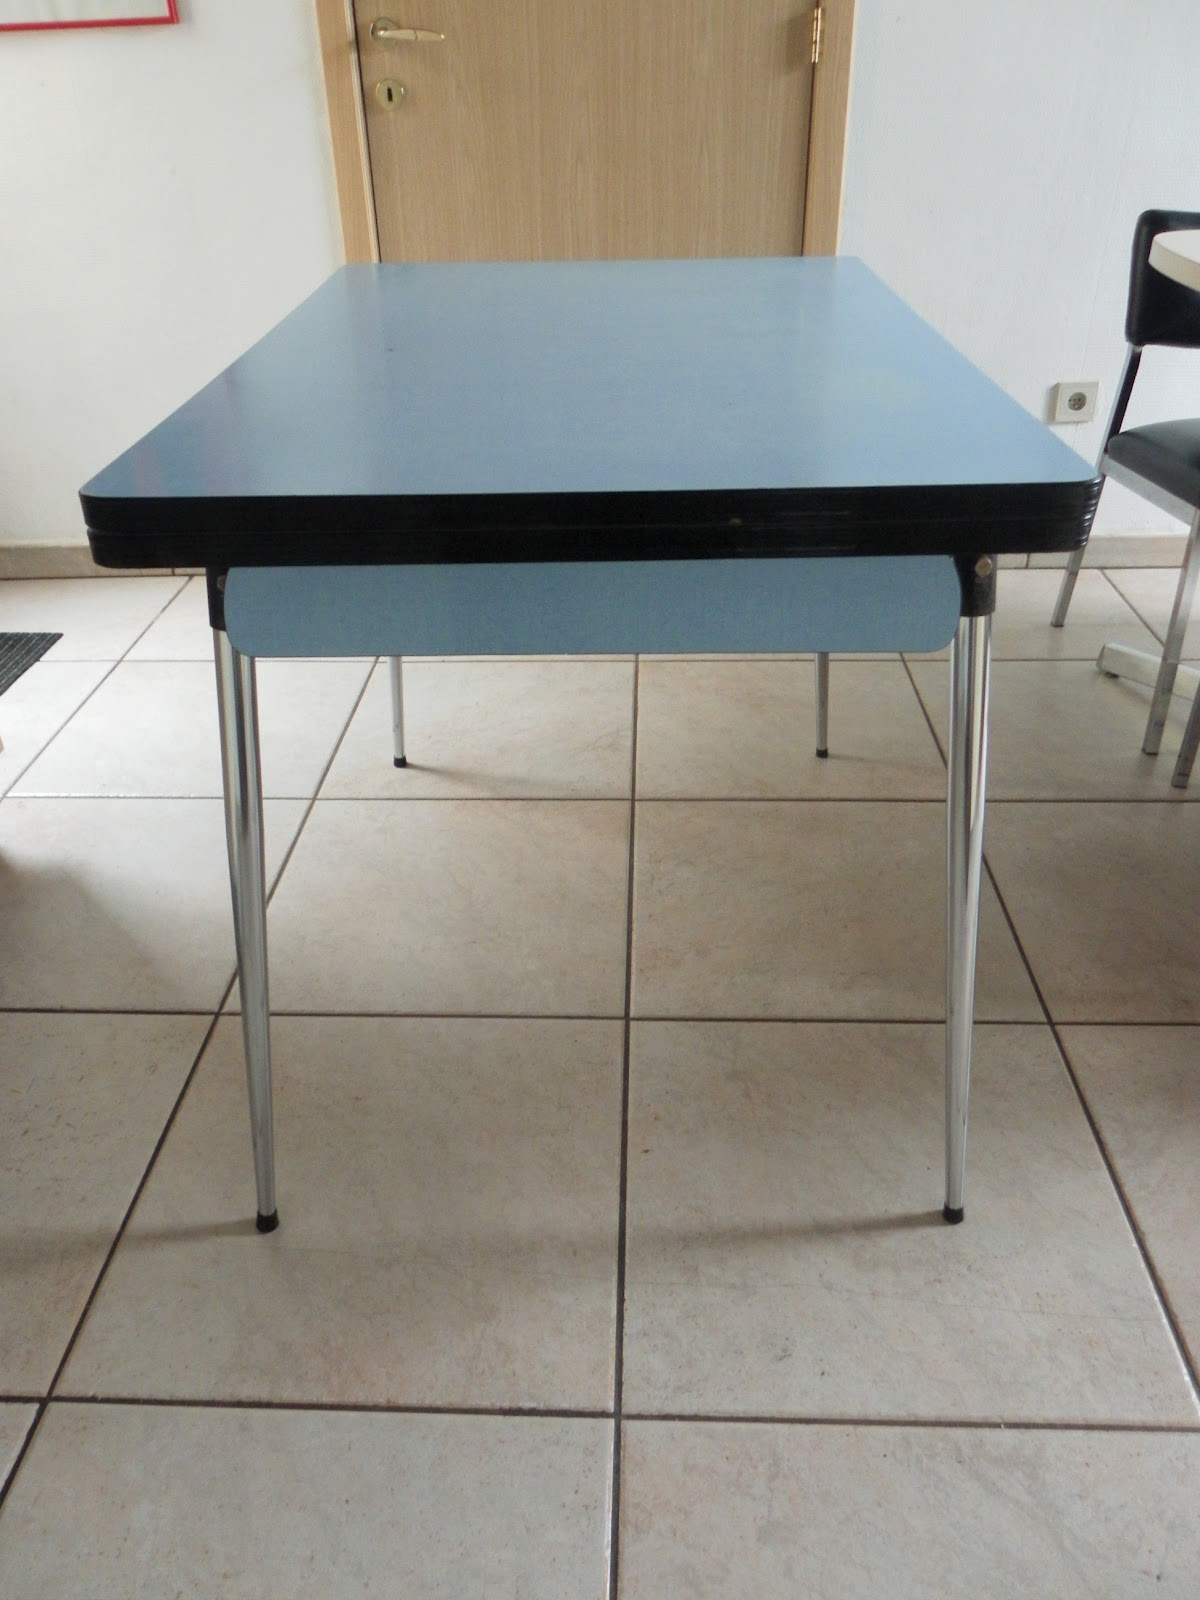 lucie la chineuse table en formica bleu. Black Bedroom Furniture Sets. Home Design Ideas